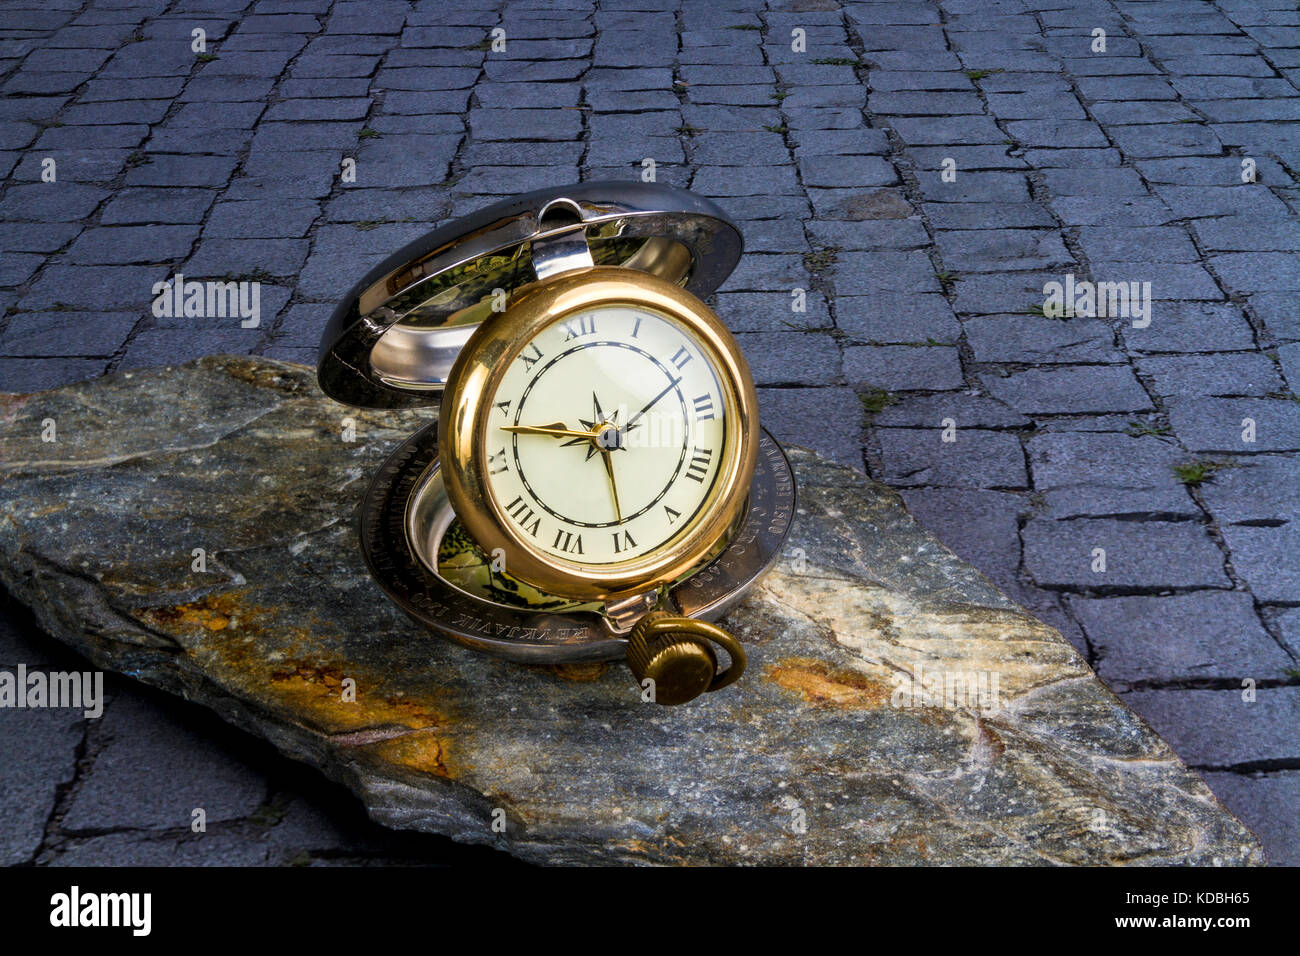 Traditional travelling clock on a piece of slate on a cobblestone pavement - Stock Image